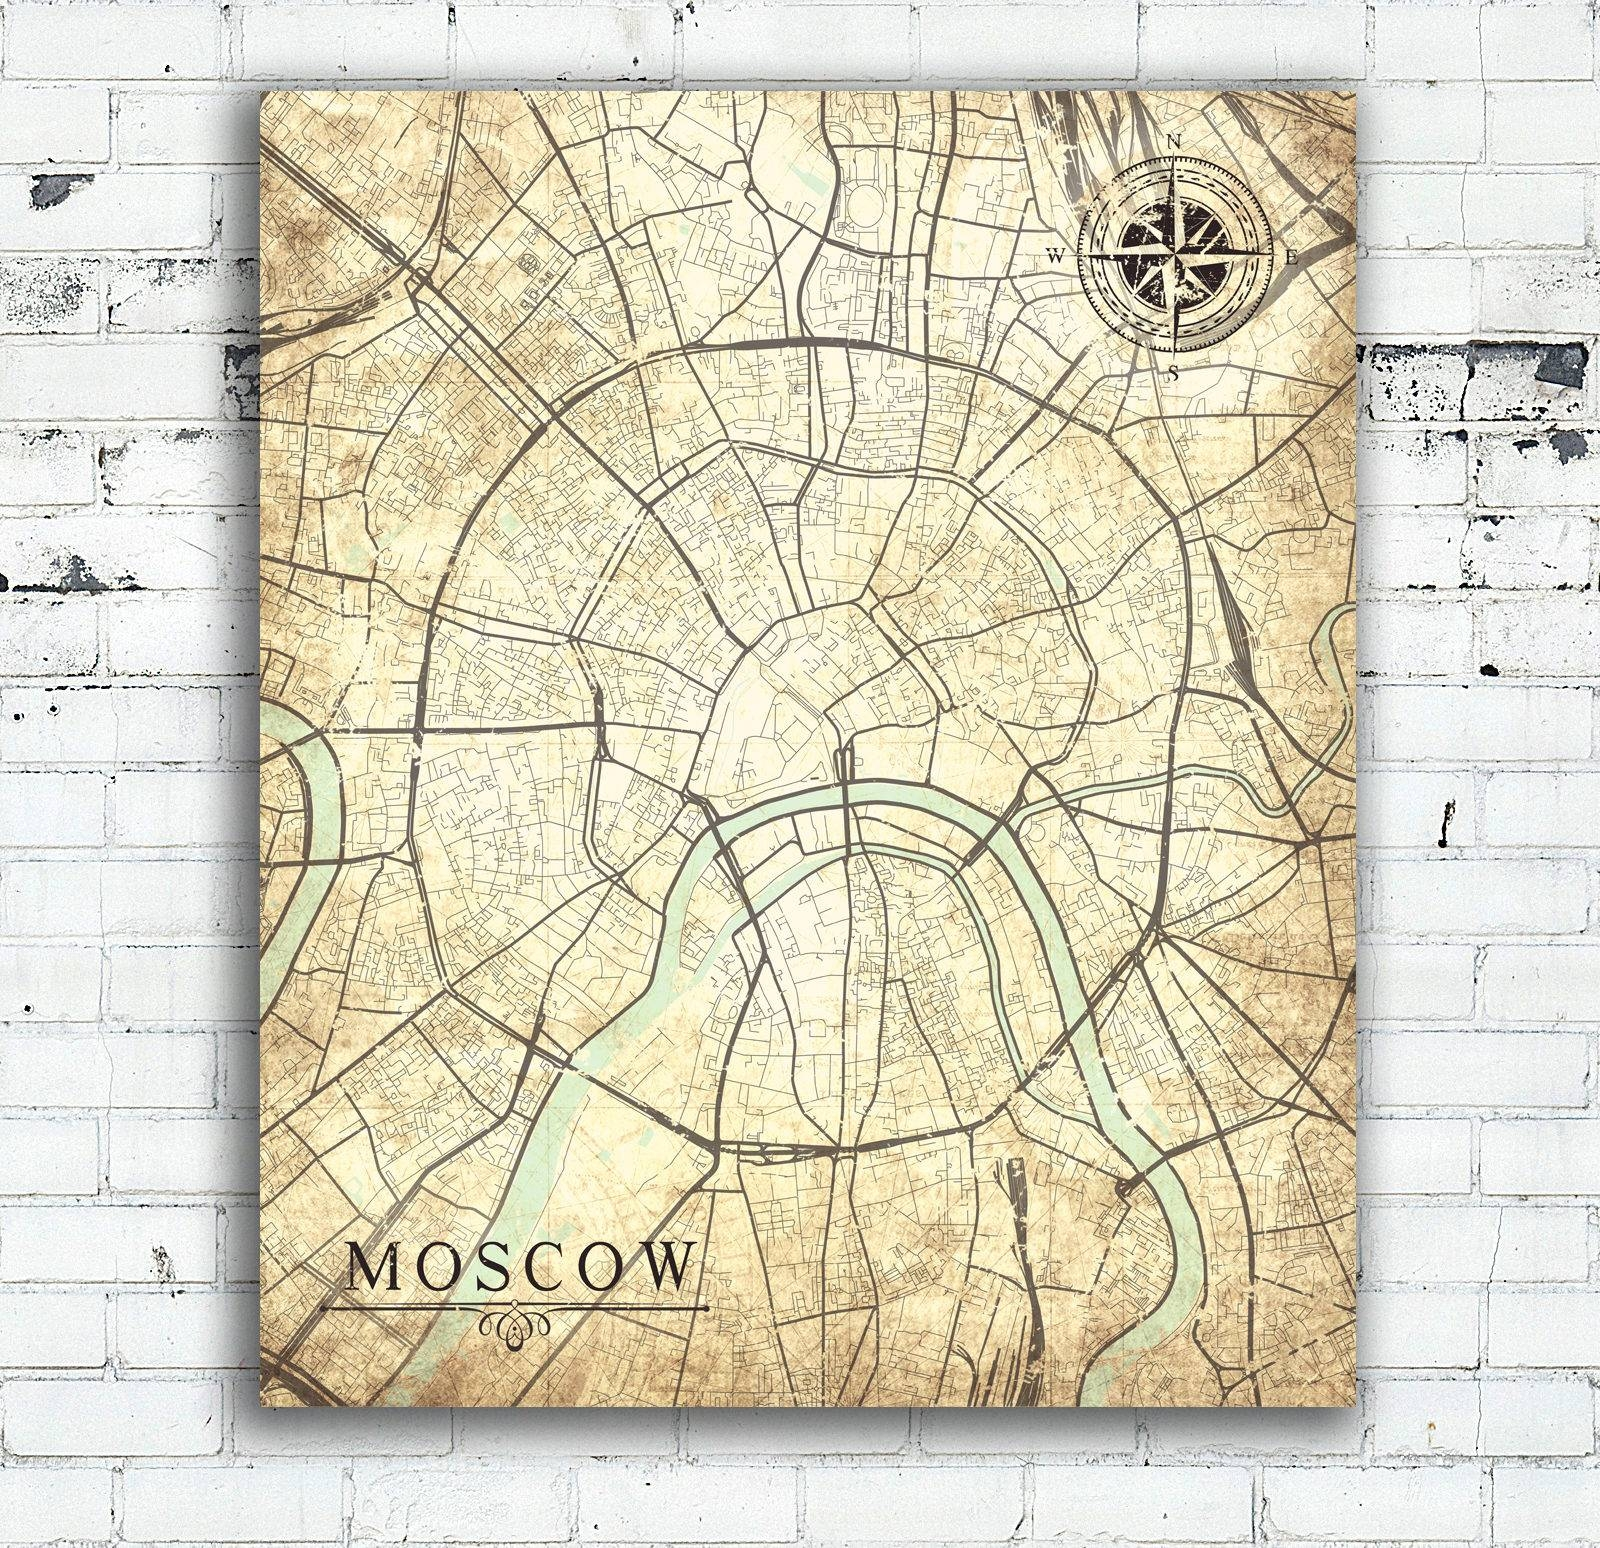 Moscow Russia Canvas Print Moscow Russia Vintage Map Wall Art City Inside Recent City Map Wall Art (View 13 of 20)